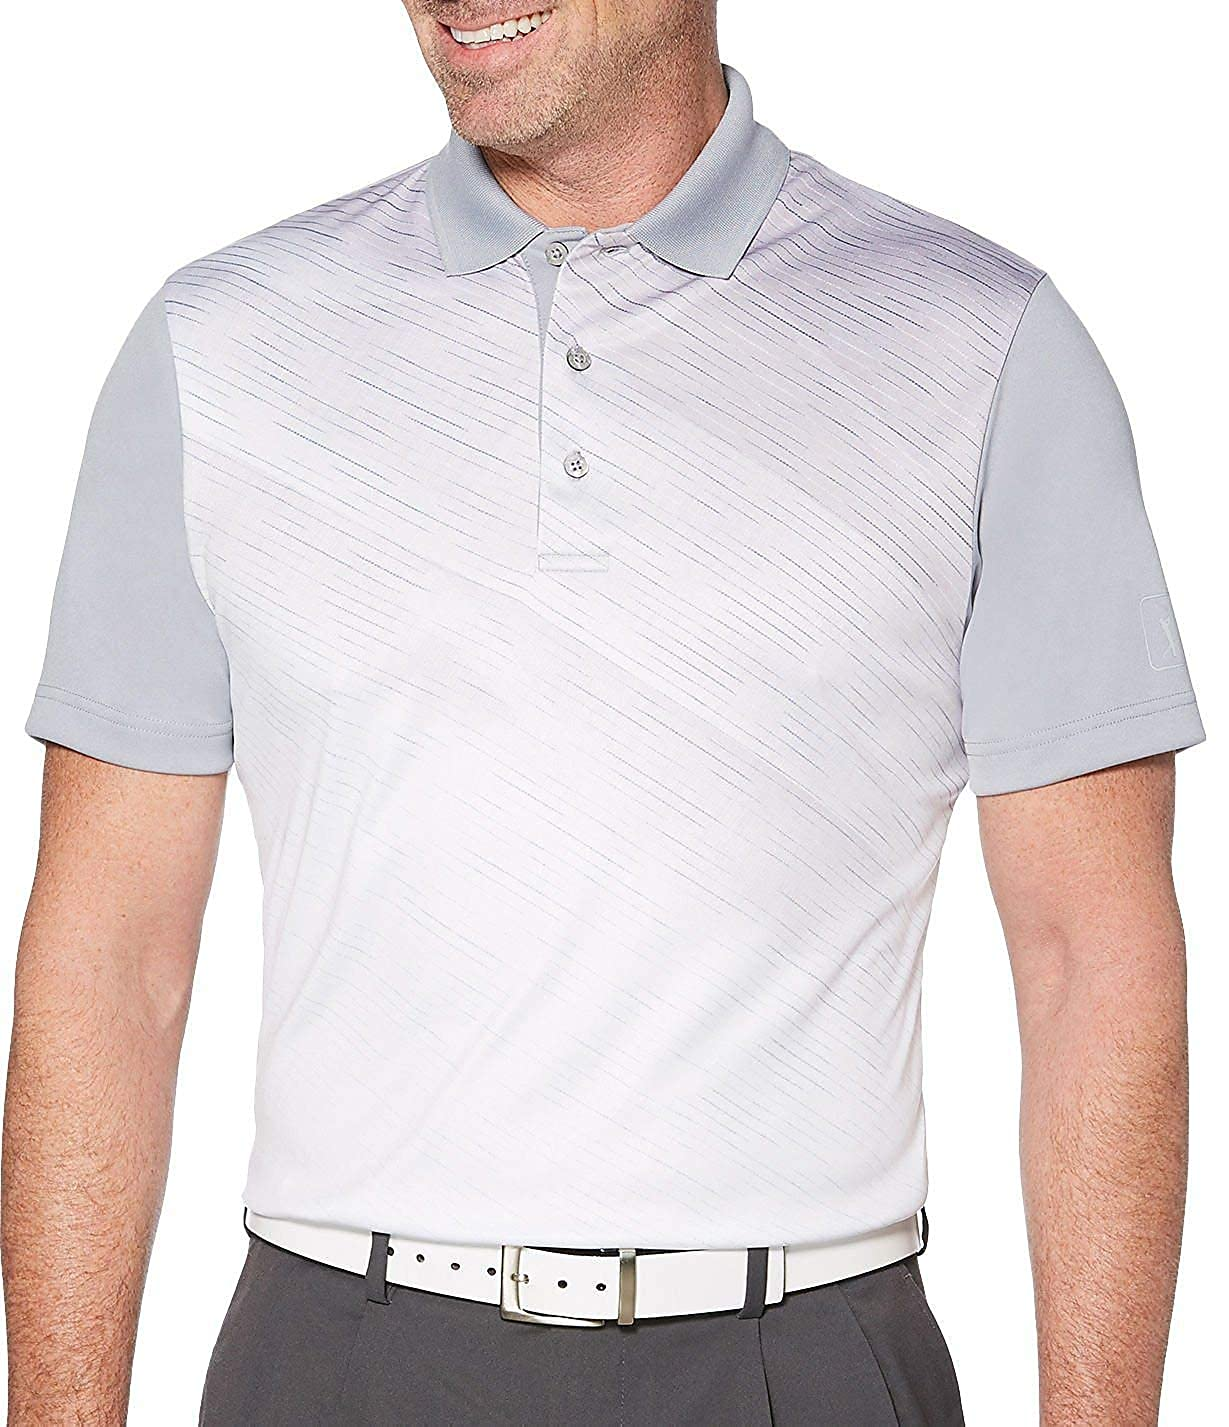 PGA TOUR Mens Pro Series Asymmetrical Gradient Polo Shirt P000526097